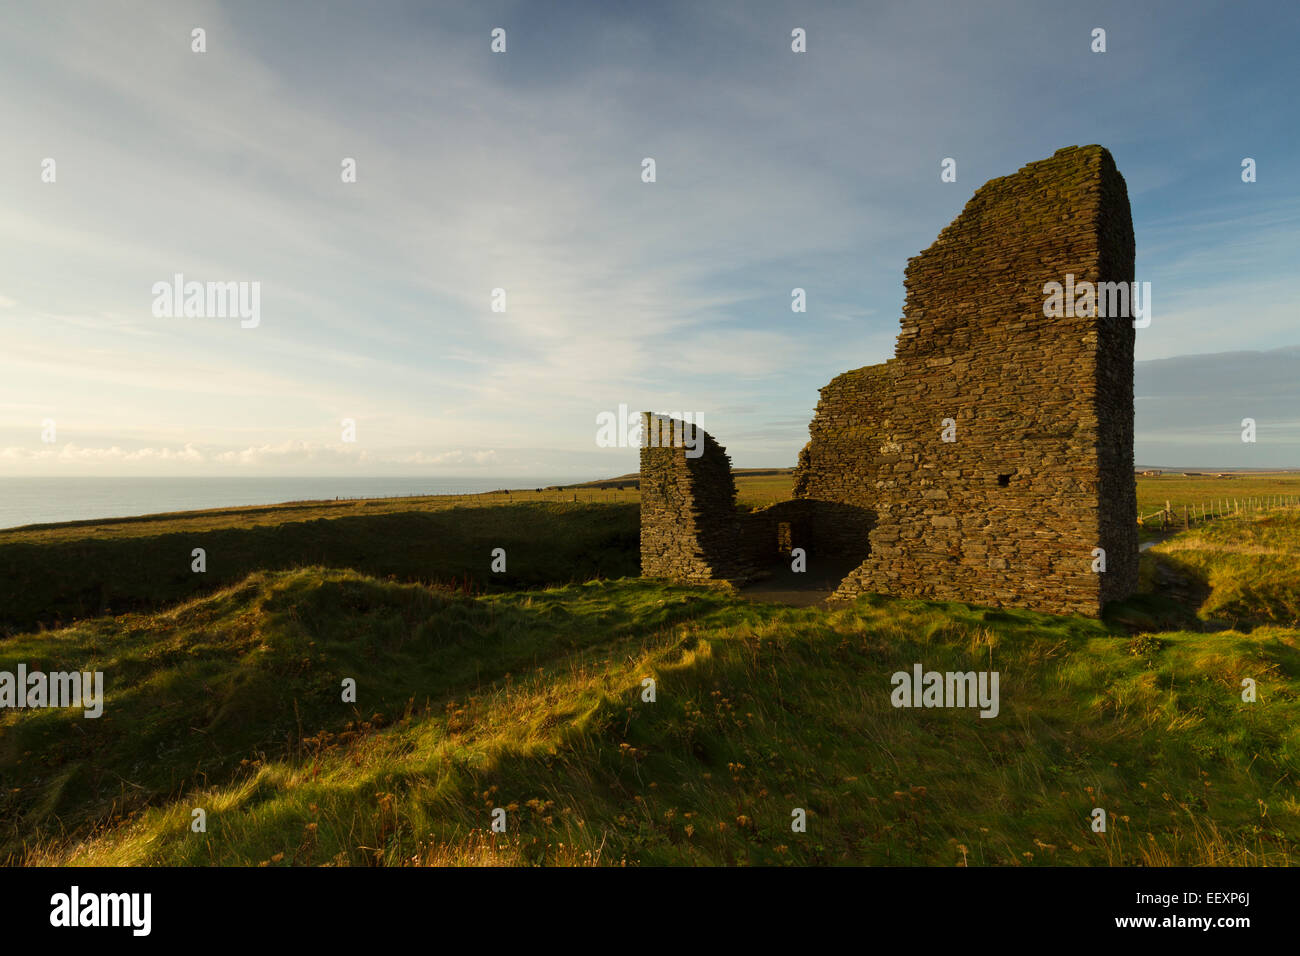 Castle of Old Wick, Caithness - Stock Image